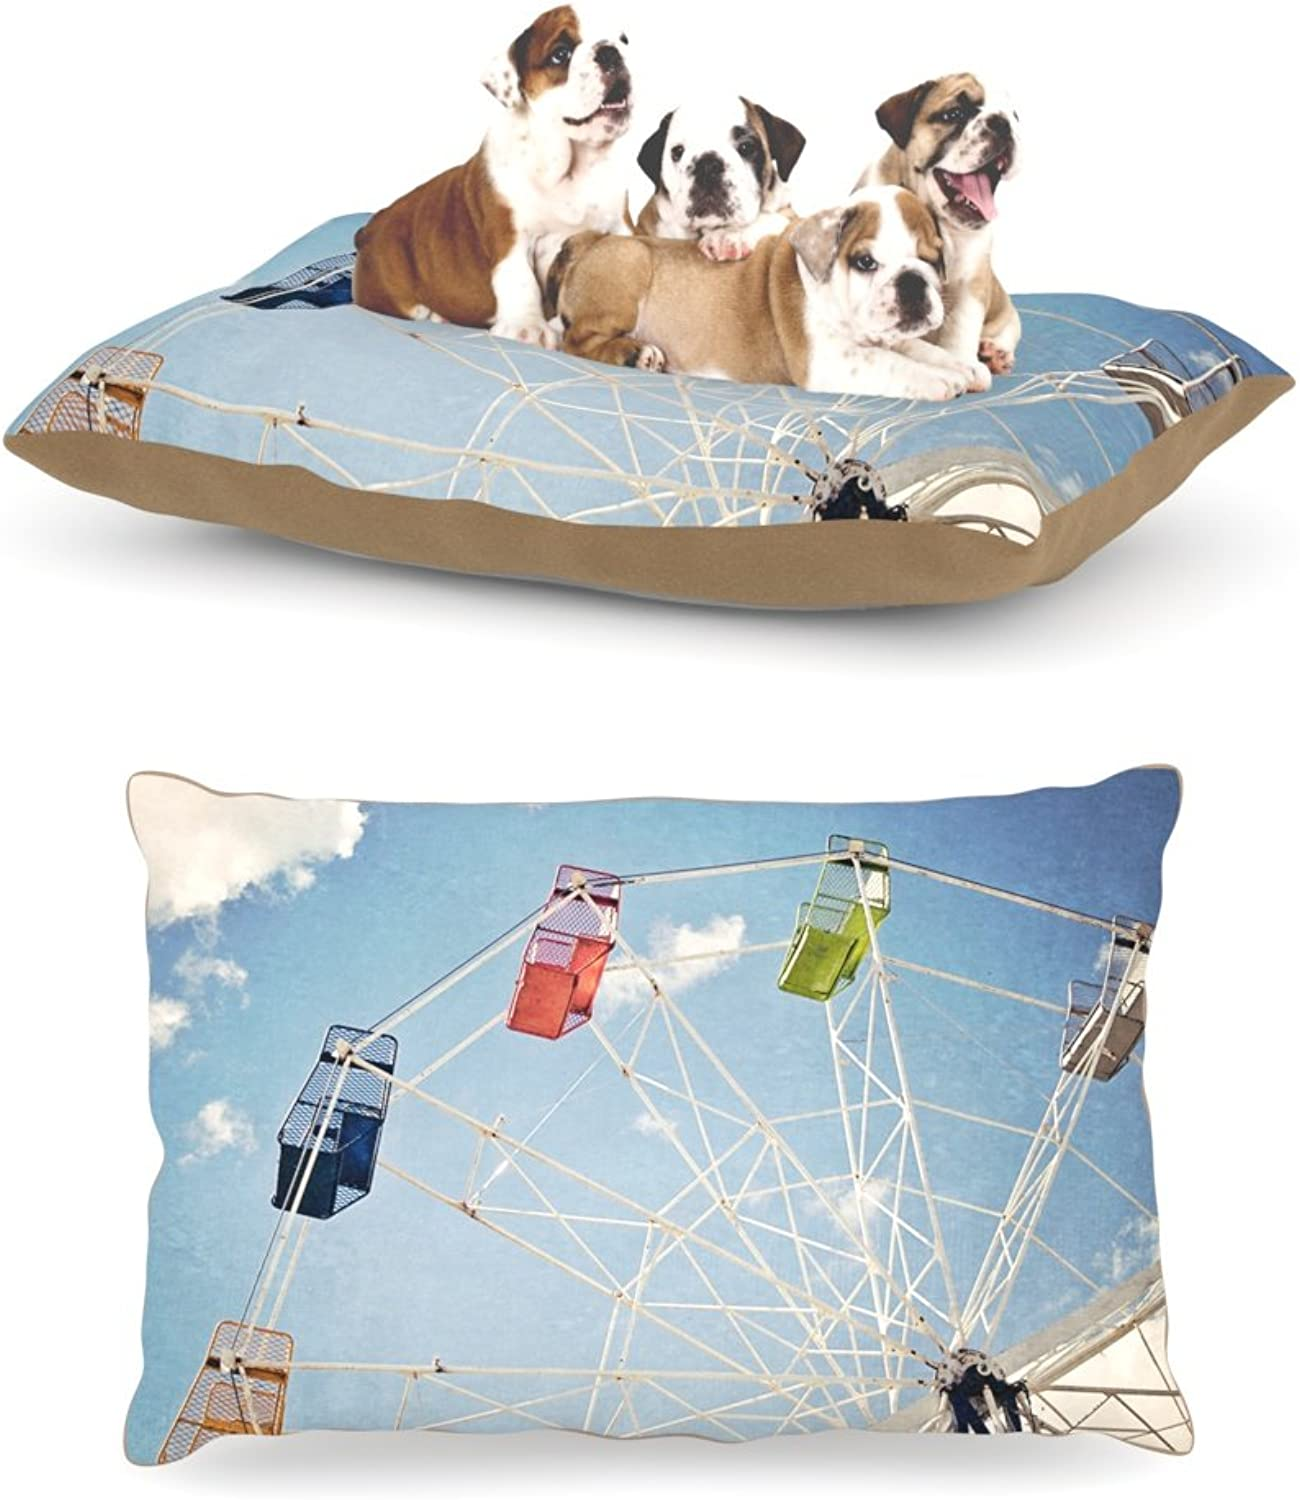 Kess InHouse Susannah Tucker The Show Came to Town Carnival Dog Bed